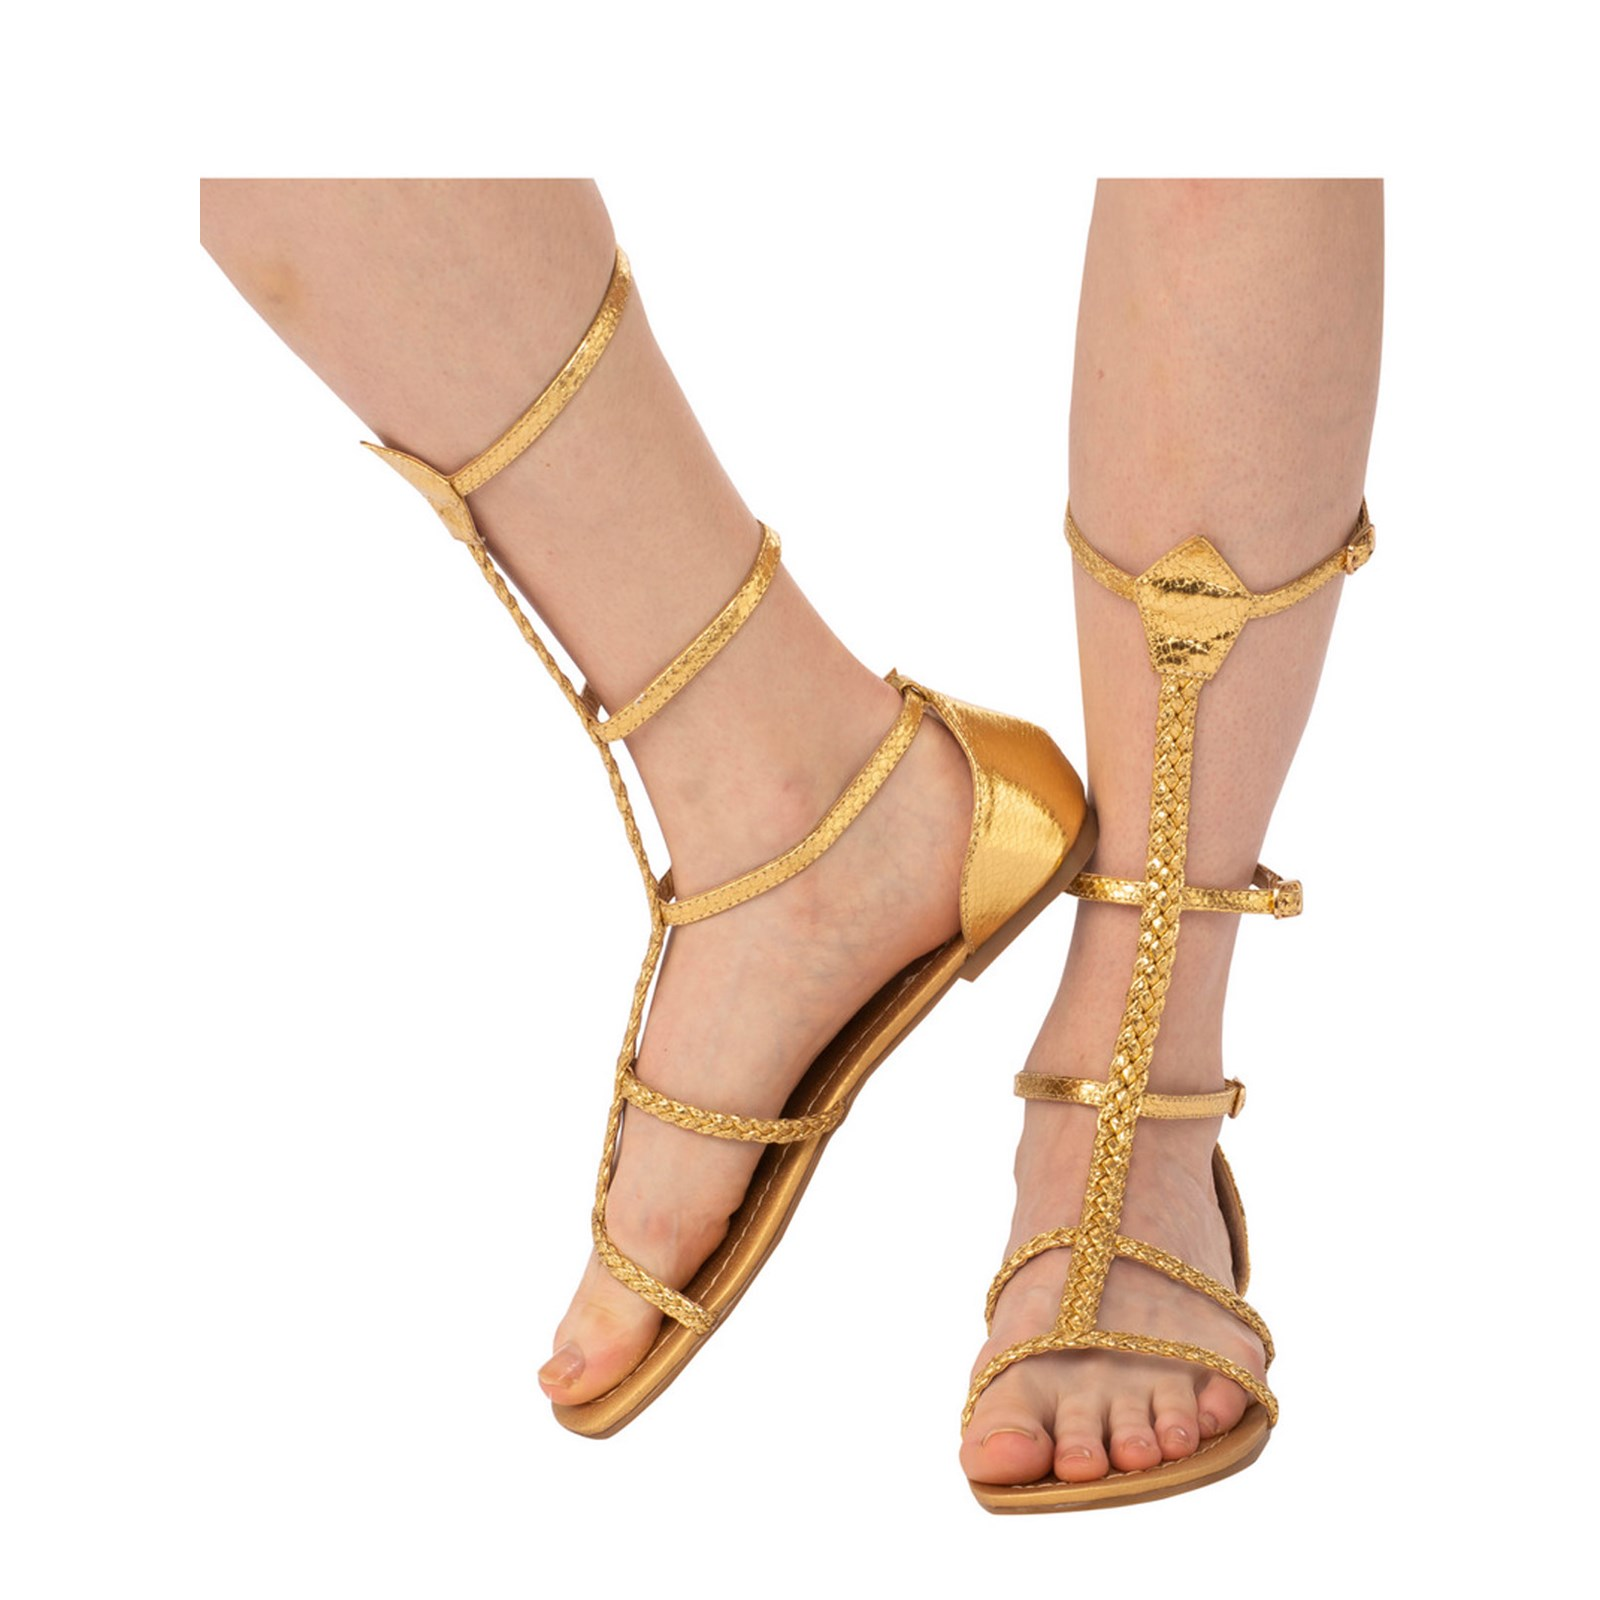 Womens Cleopatra Sandal Halloween Costume Accessory